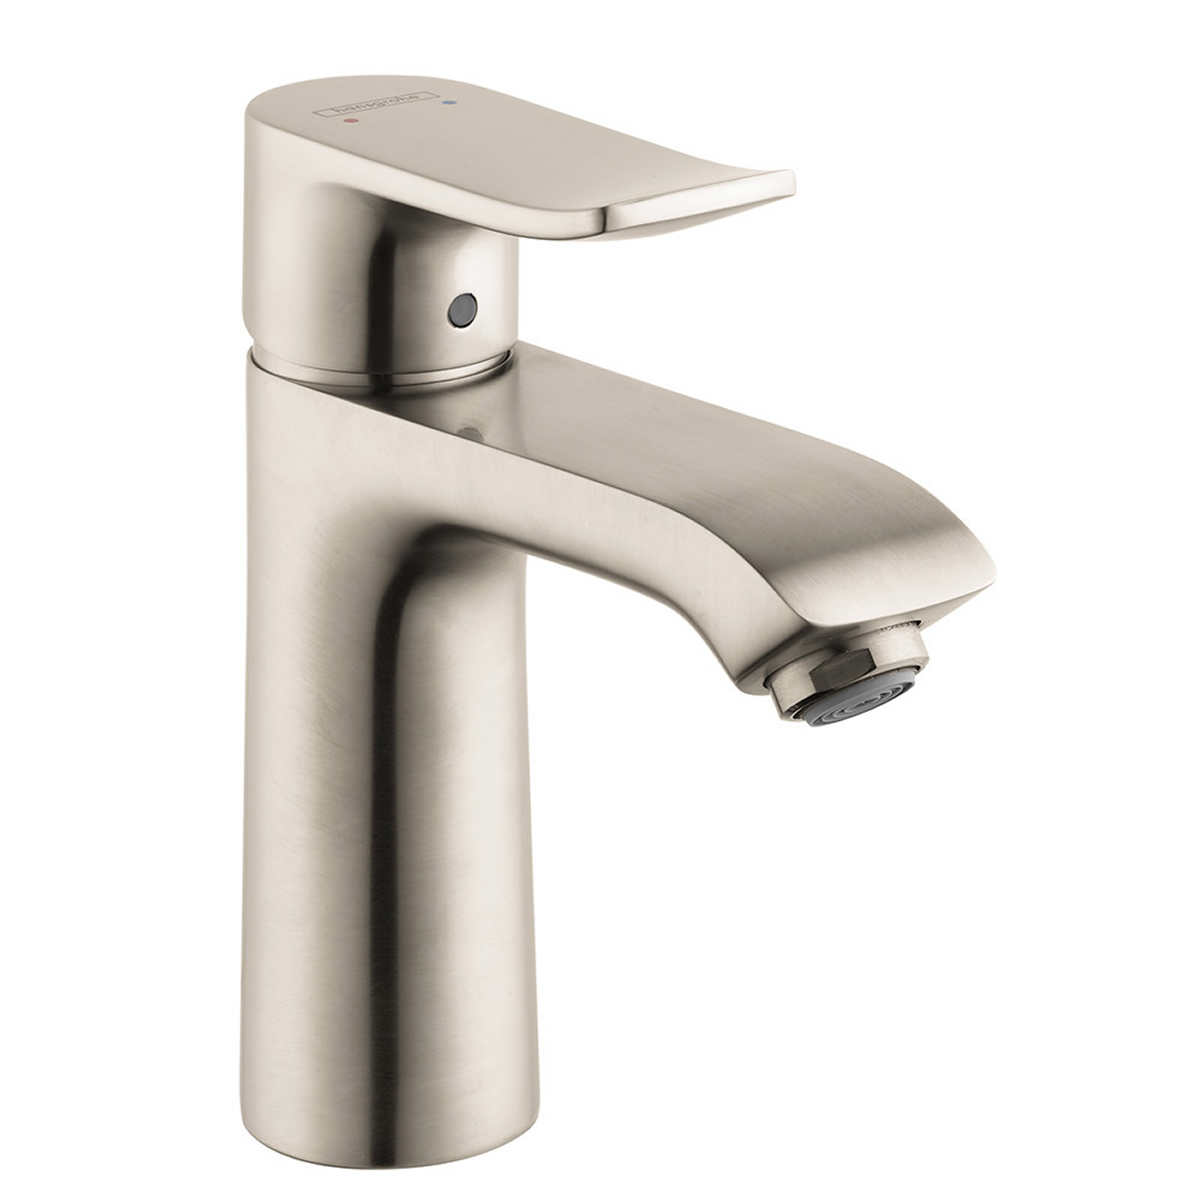 Bathroom Faucet No Water Coming Out faucets | costco